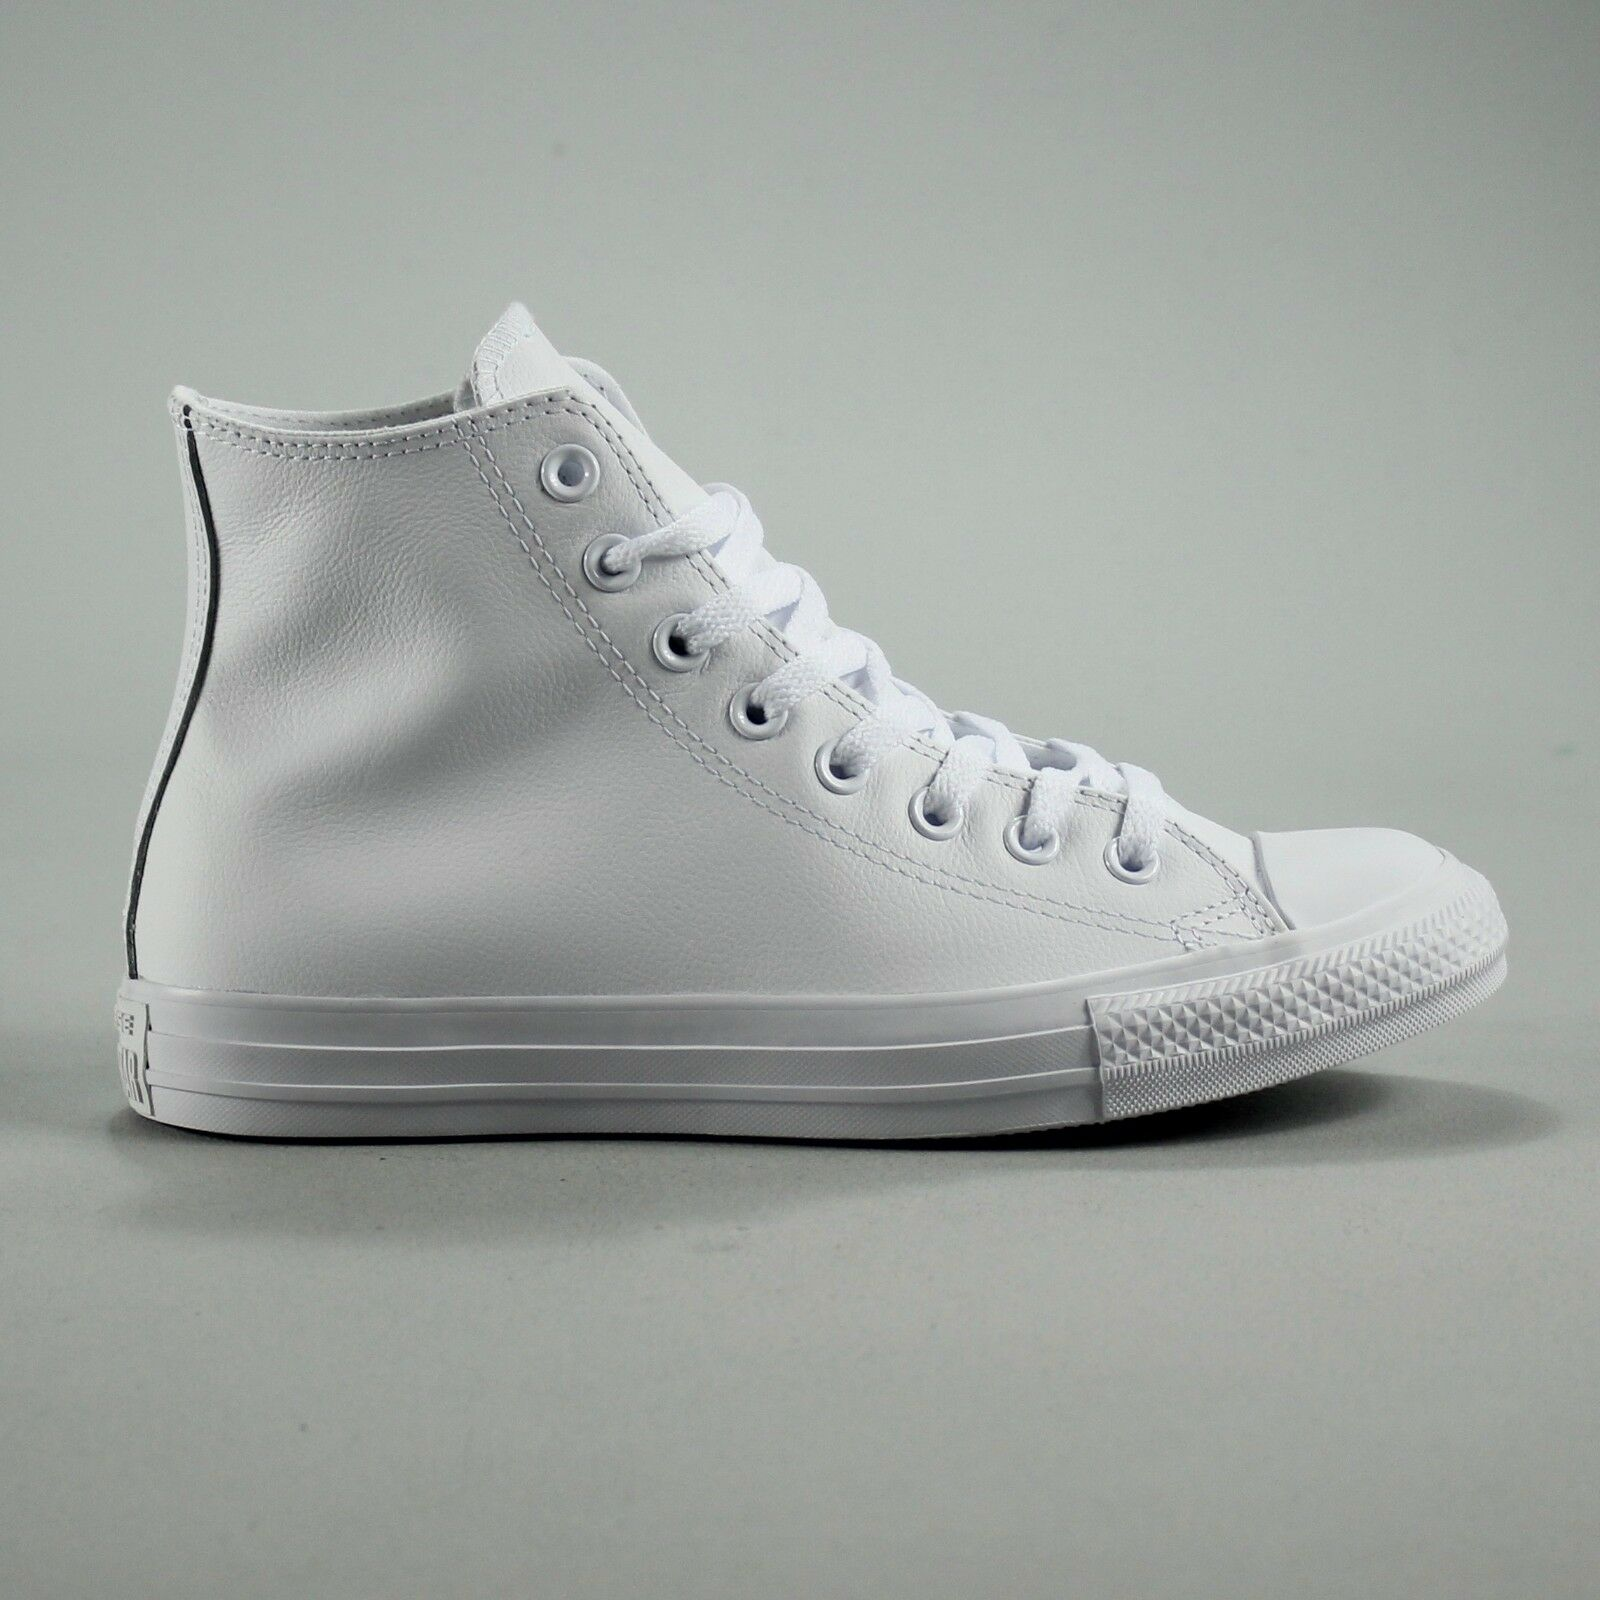 Details about Converse All Star Hi Leather Trainers Brand New in UK Size 3,4,5,6,7,8,9,10,11